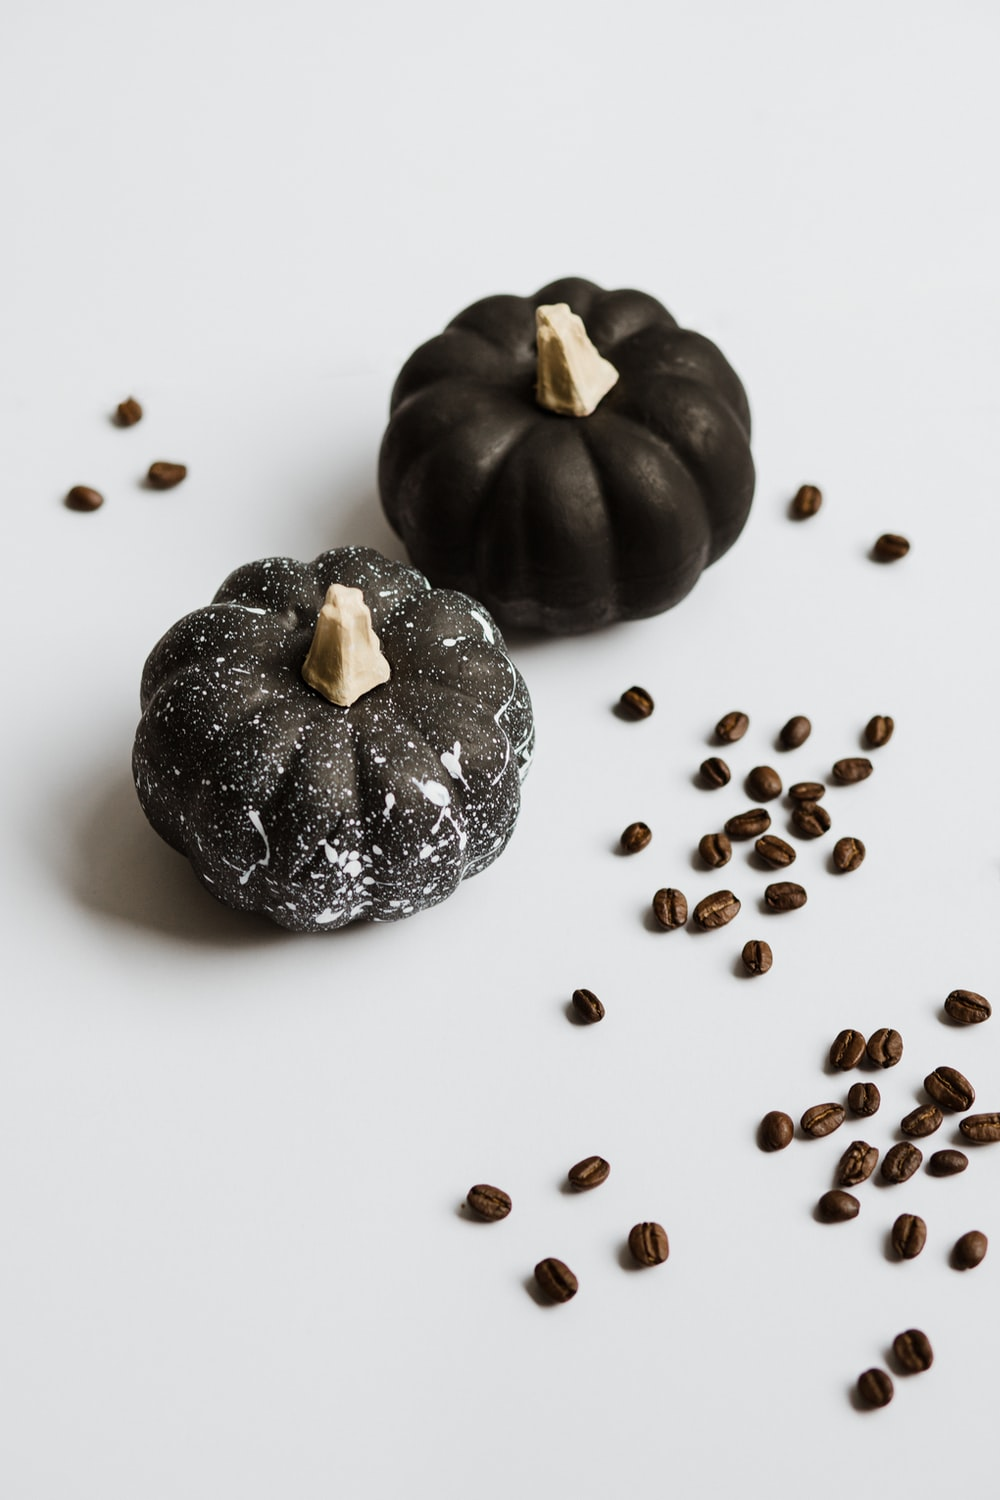 two black pumpkins on white surface